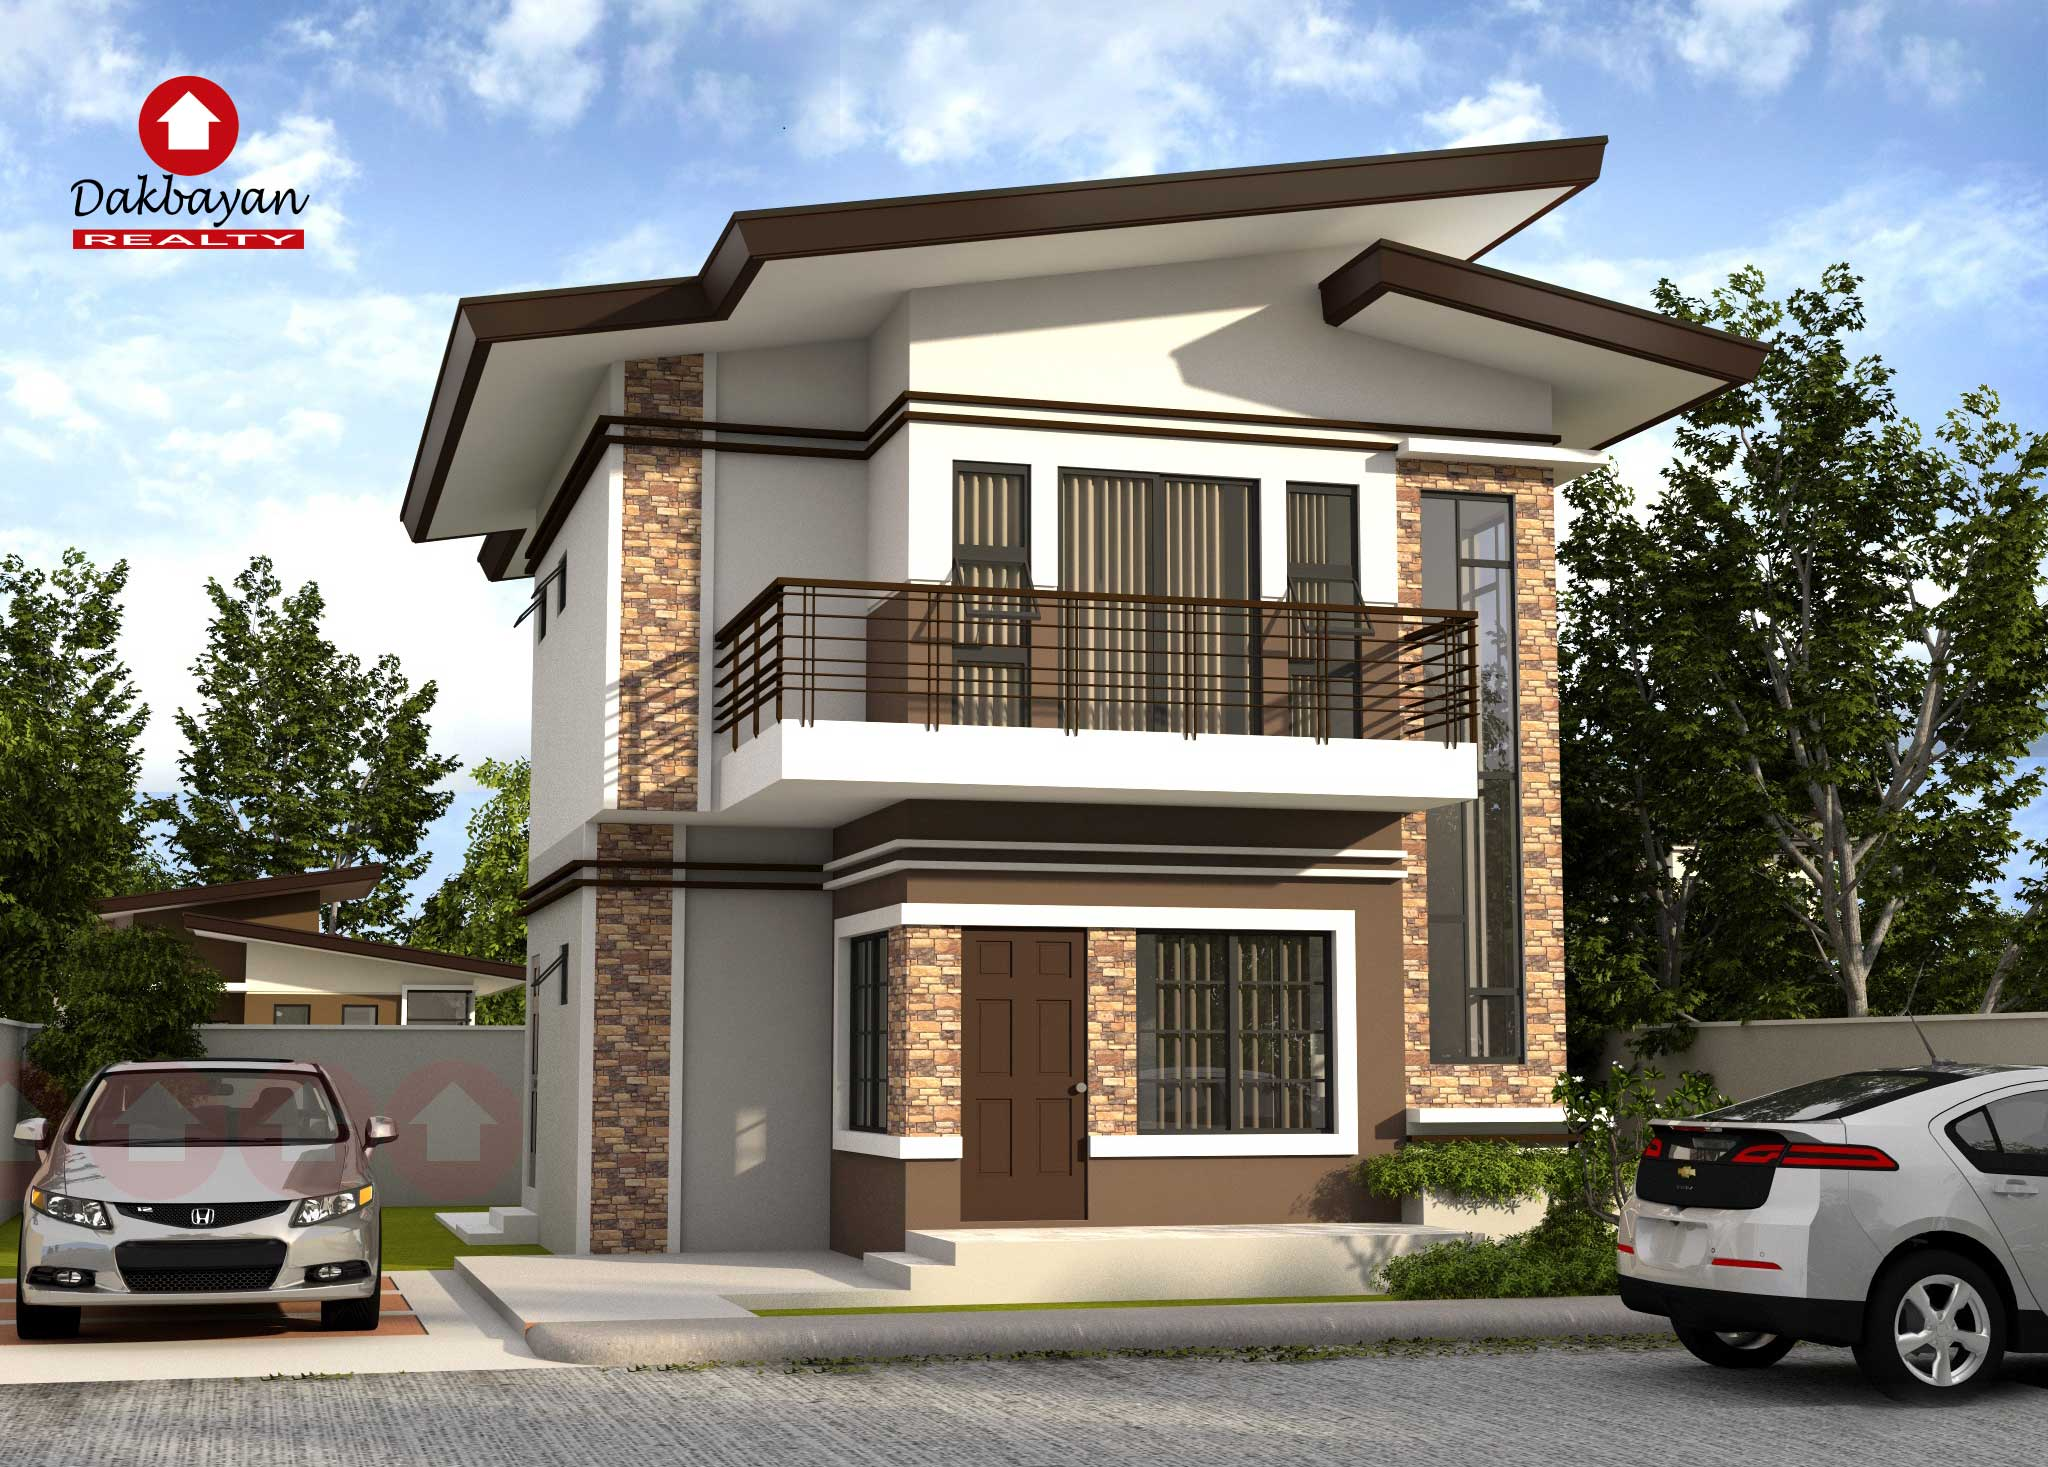 Ilumina estates subdivision buy brand new house and lot for 300 sqm house design philippines